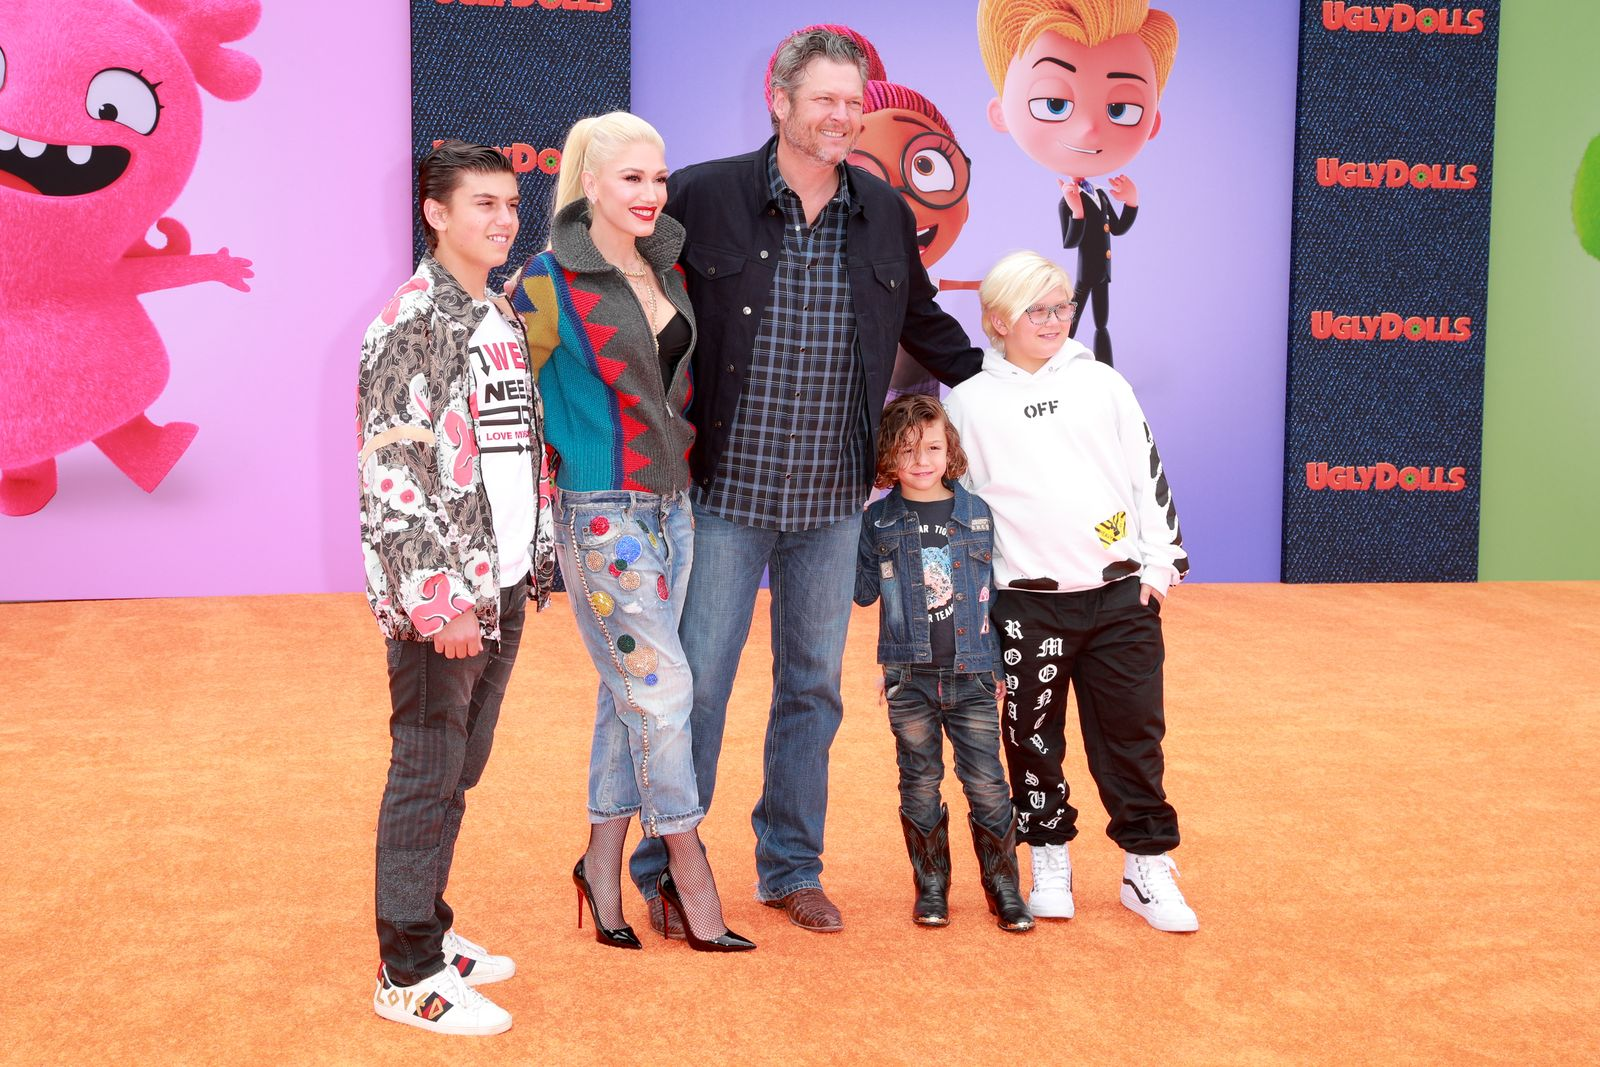 """Kingston Rossdale, Gwen Stefani, Blake Shelton, Apollo Bowie Flynn Rossdale, and Zuma Nesta Rock Rossdale at the World Premiere of """"UglyDolls"""" on April 27, 2019, in Los Angeles, California. 